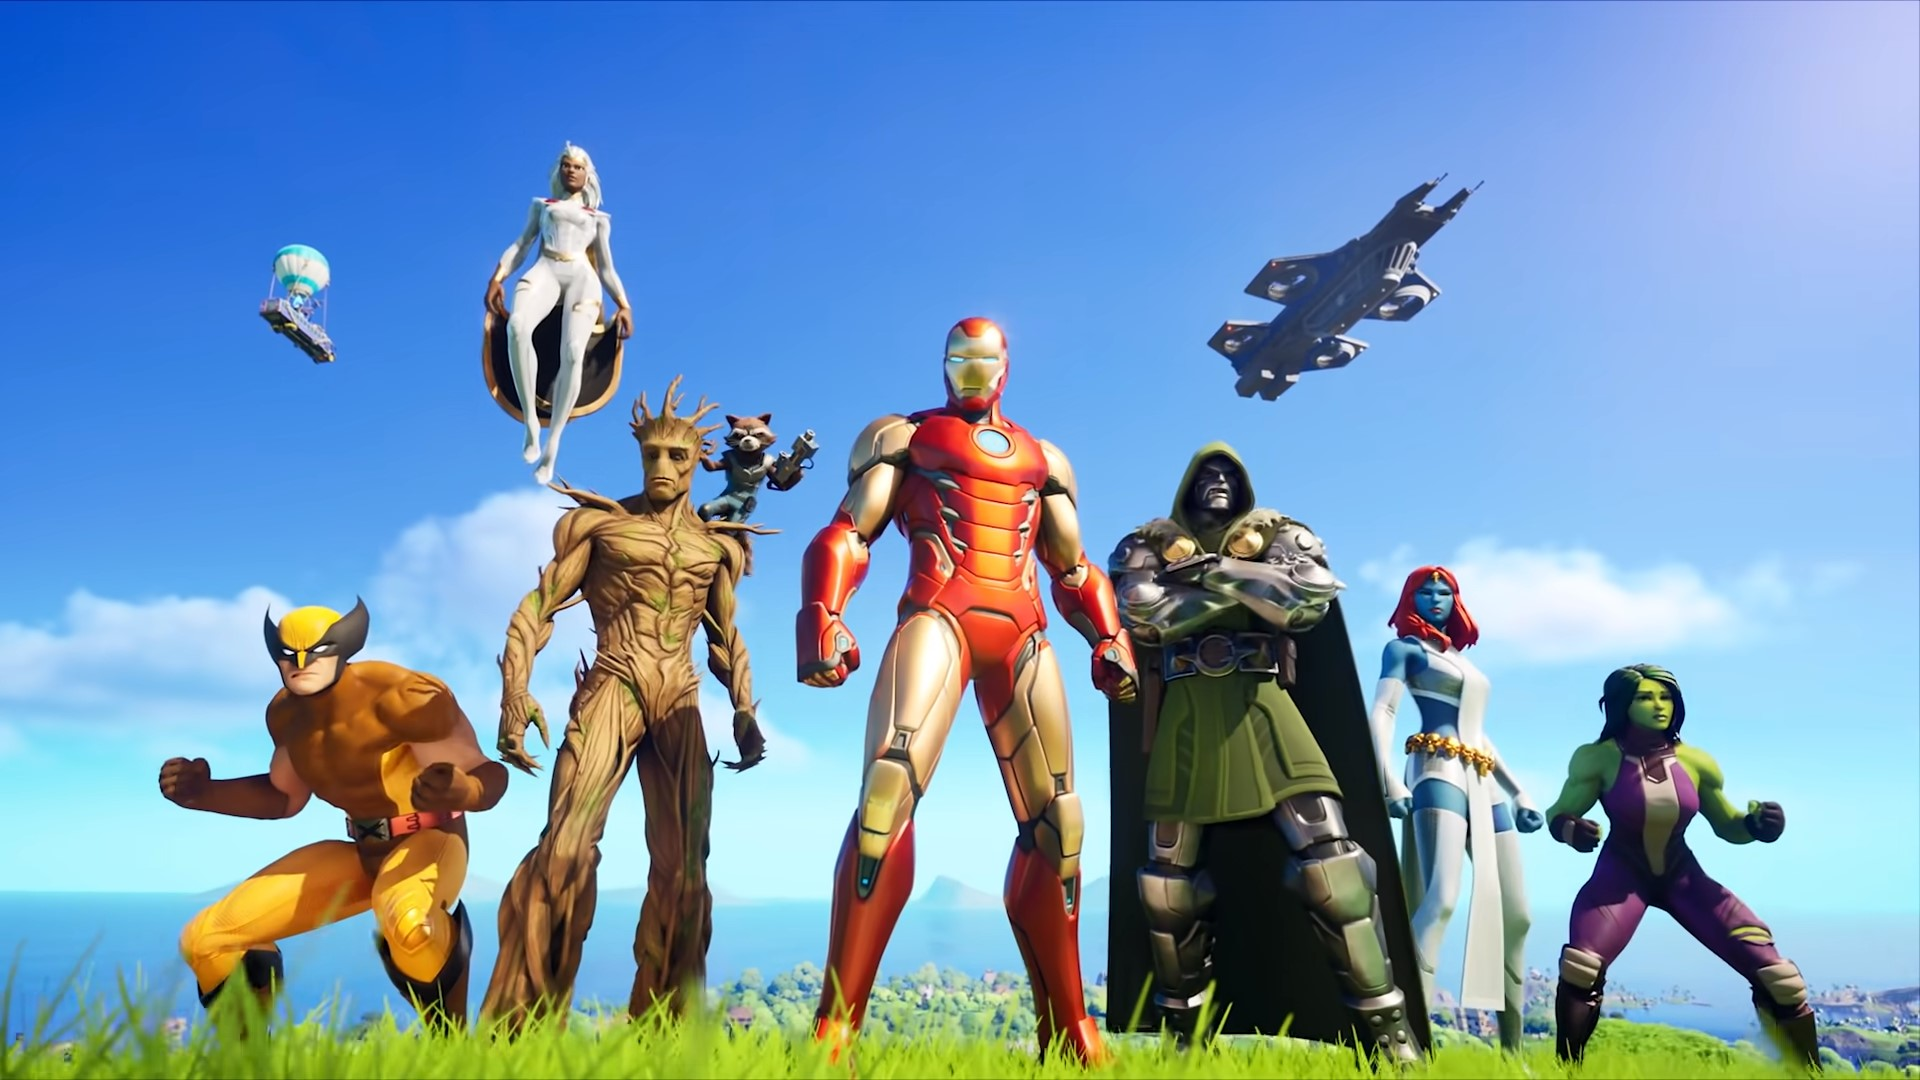 The Best Fortnite Skins Superheroes And Star Wars Pocket Tactics Discover 464 free fortnite skins png images with transparent backgrounds. the best fortnite skins superheroes